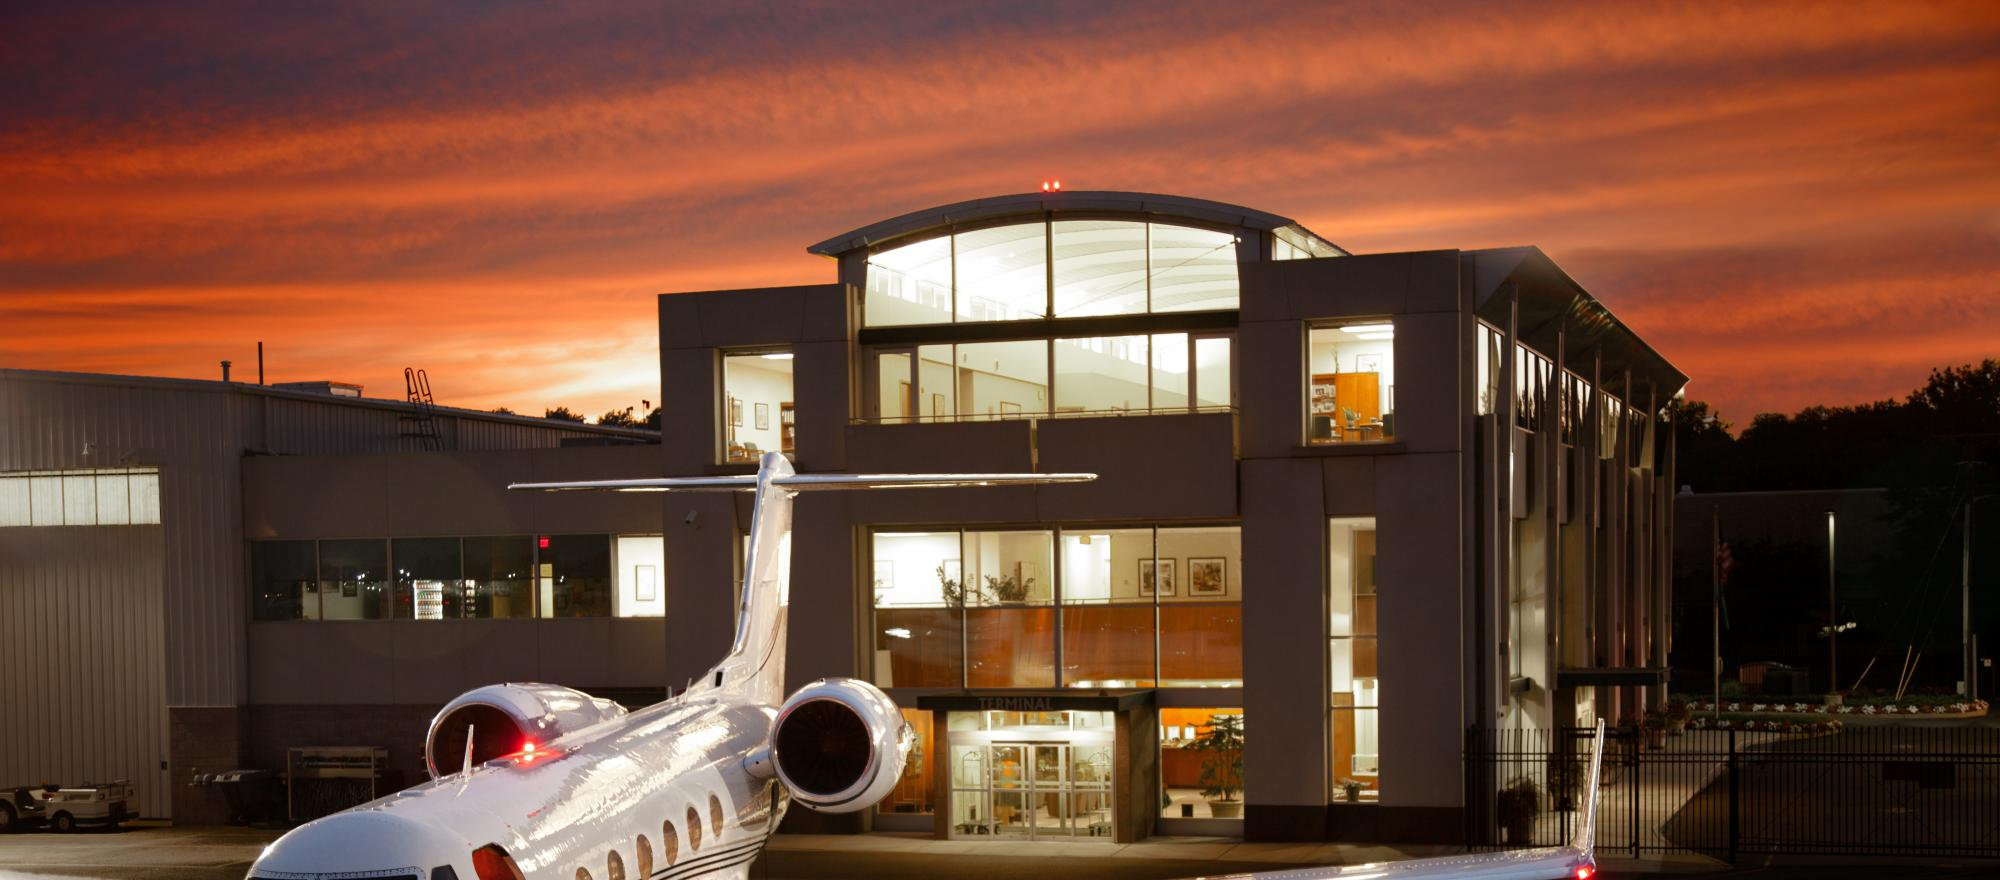 Teterboro, New Jersey-based charter company Meridian also offers FBO, aircraft management and maintenance services.